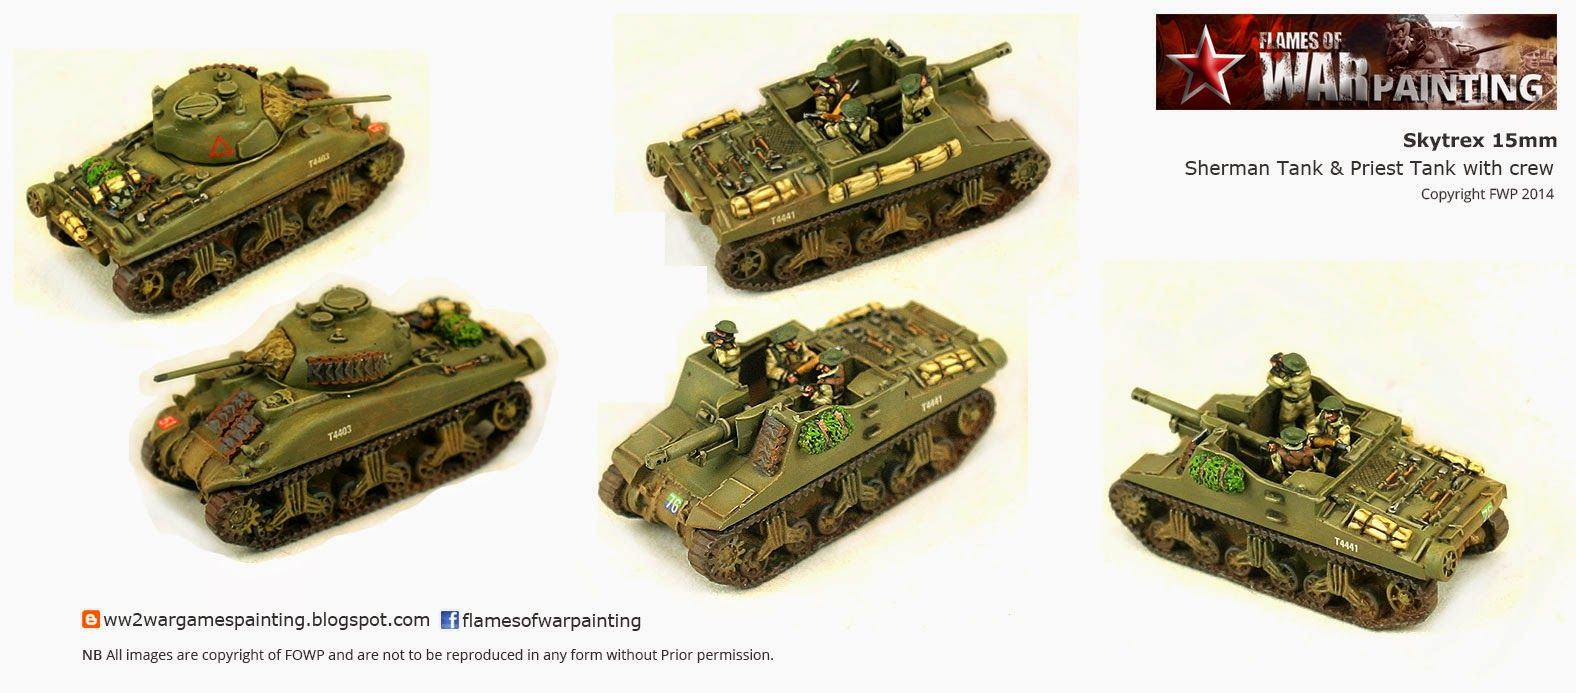 www2 SkyTrex 15mm Sherman tank and Priest Tank with crew